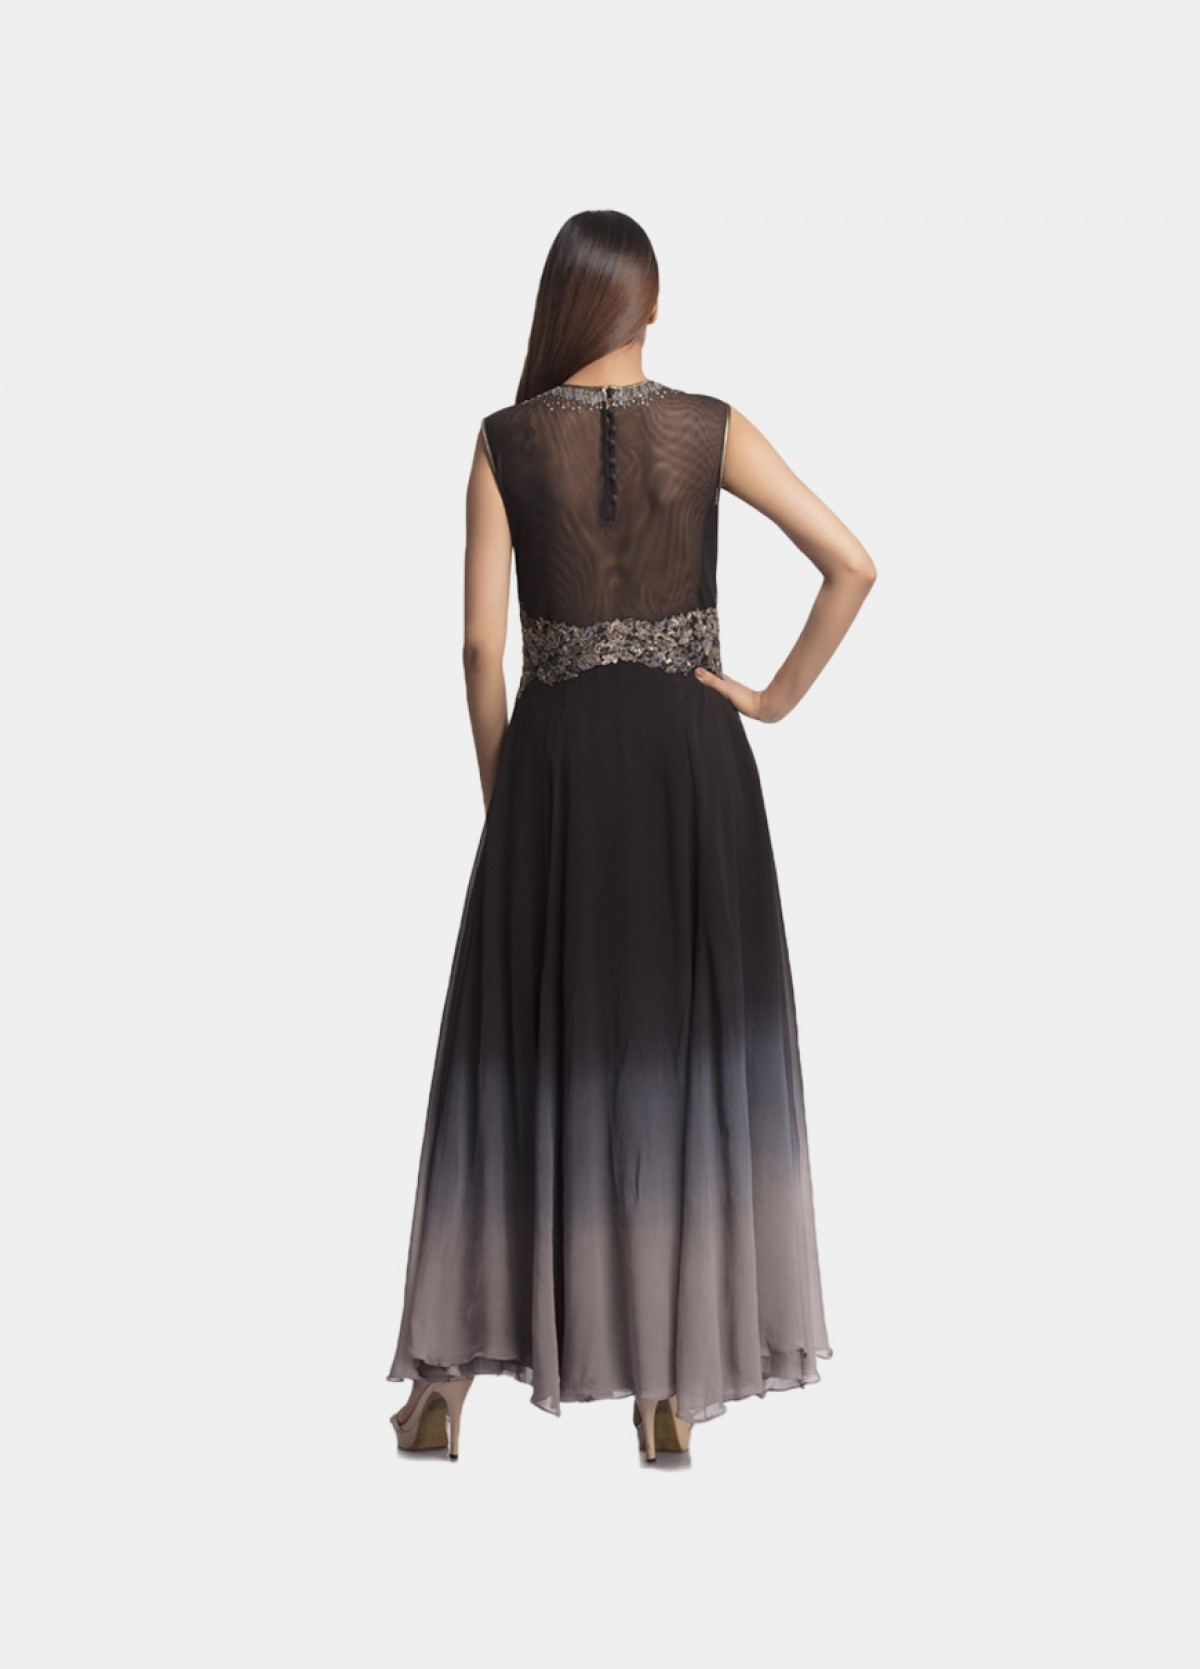 The Mettalic Bloom Gown